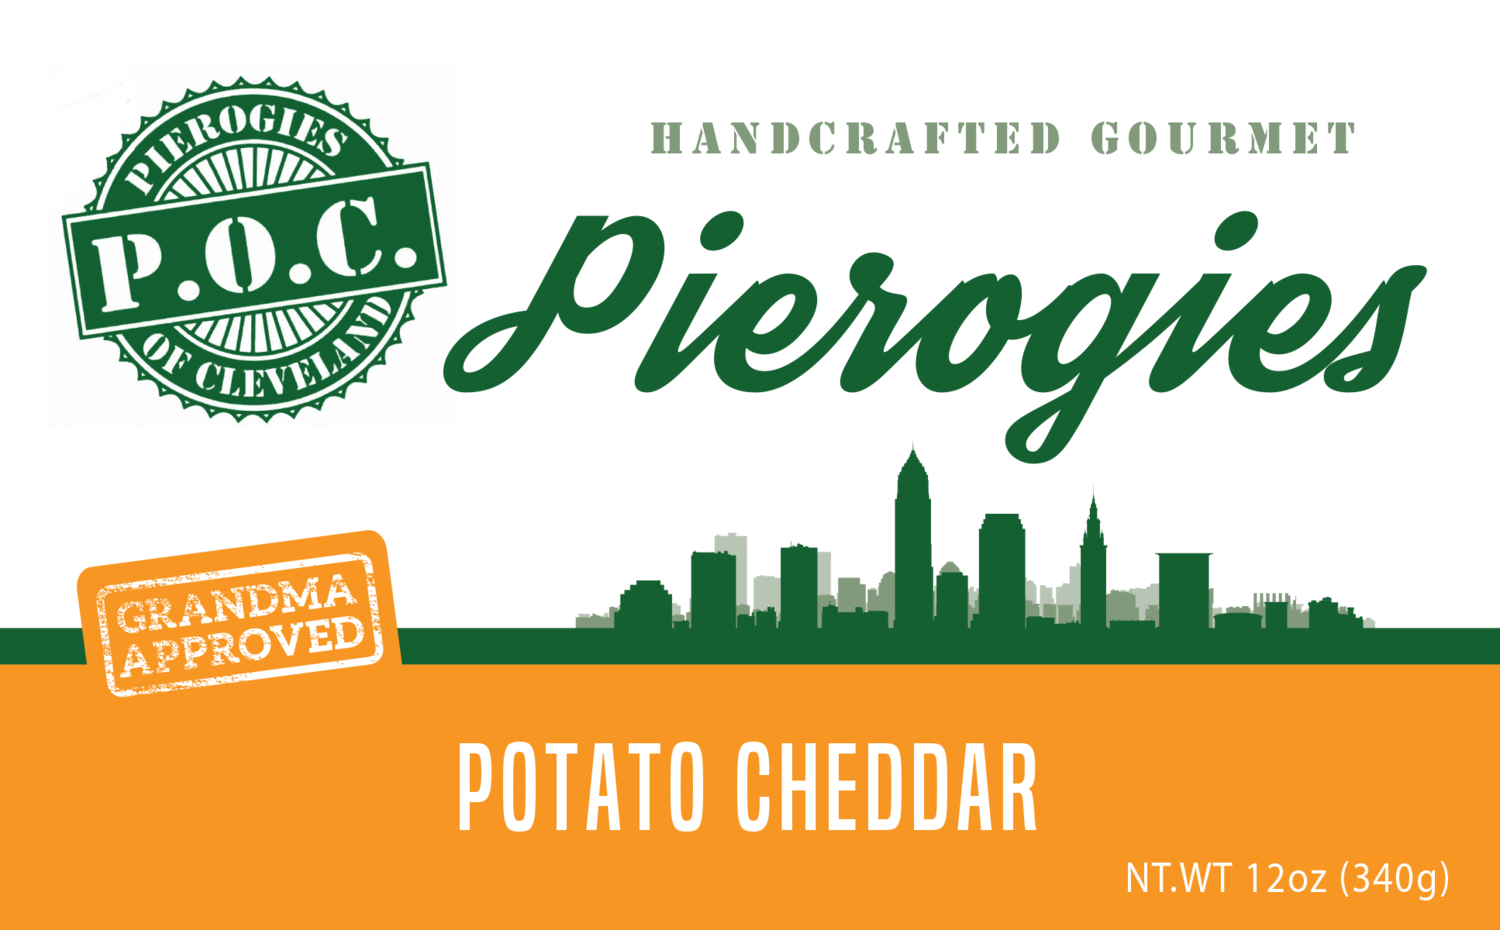 Potato Cheddar